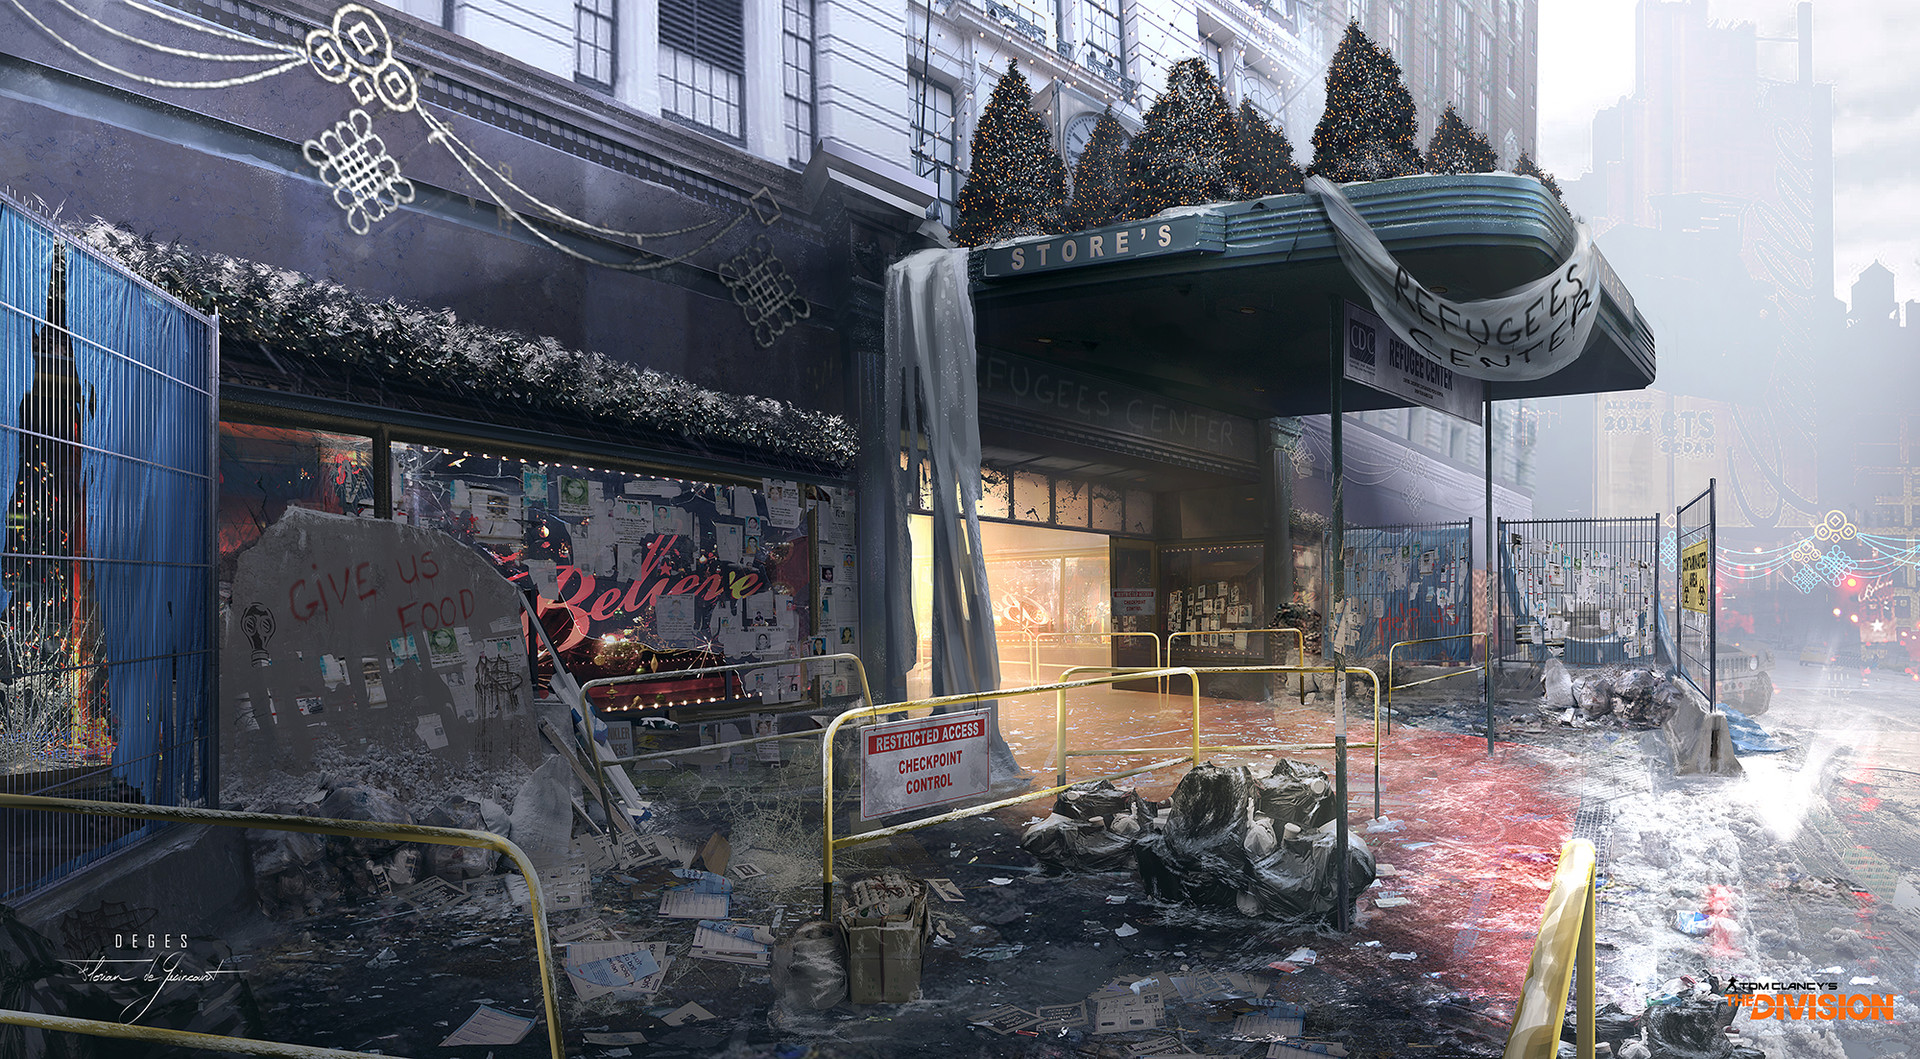 The Division Concept Art by Florian de Gesincourt.